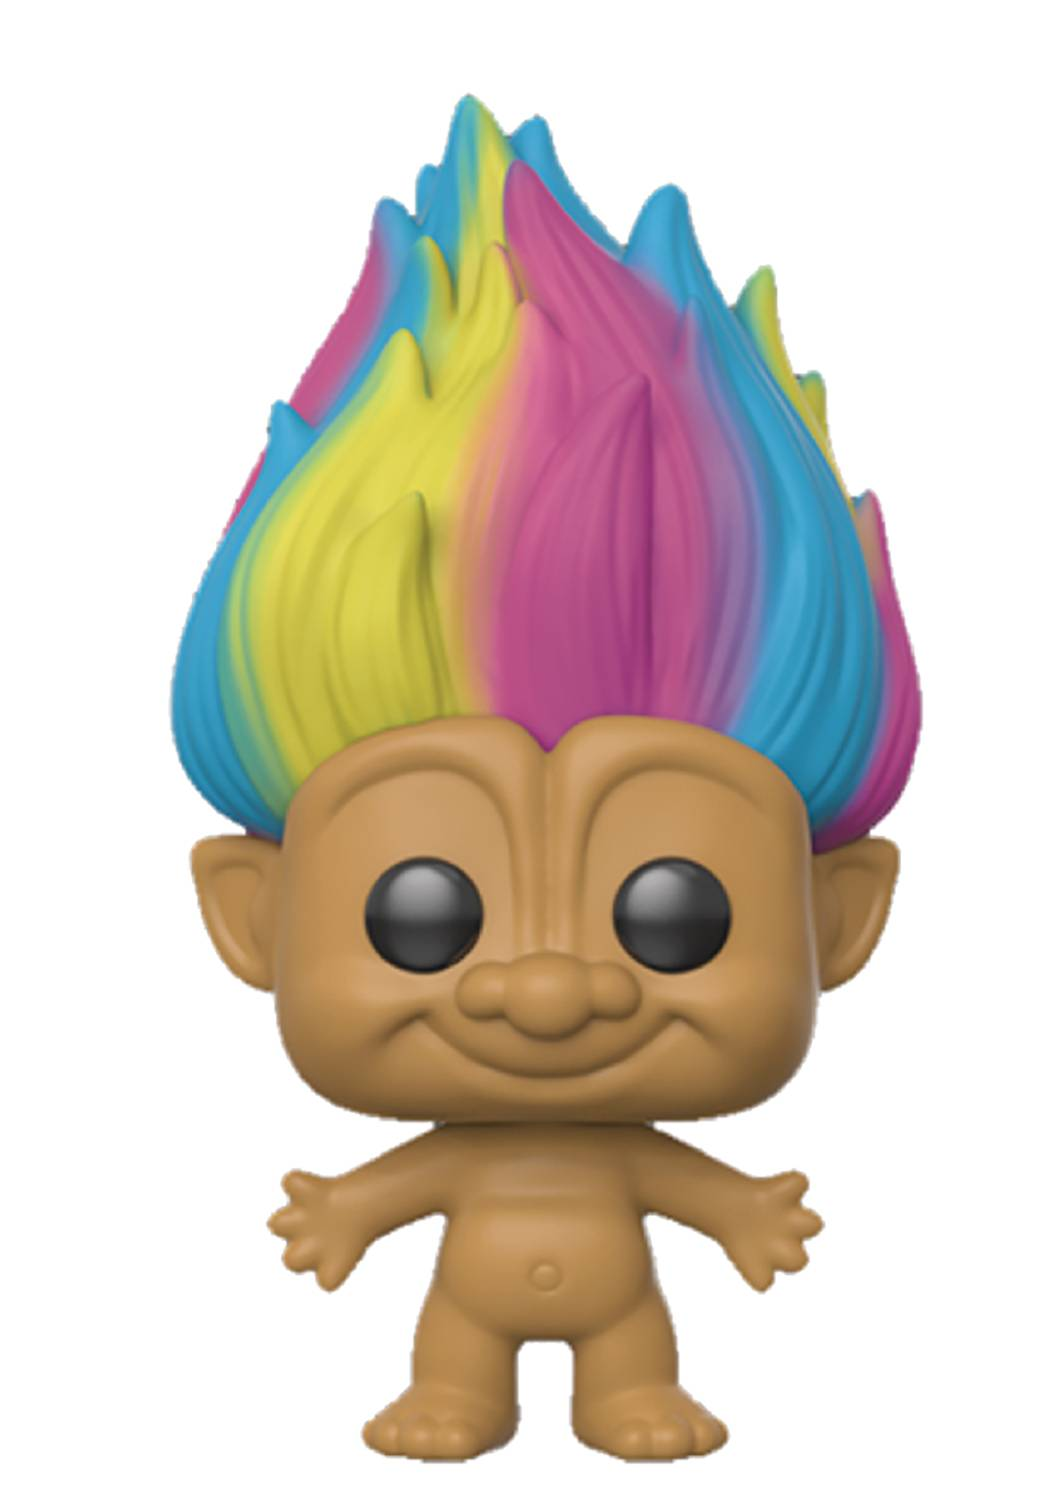 POP TROLLS RAINBOW TROLL VIN FIG